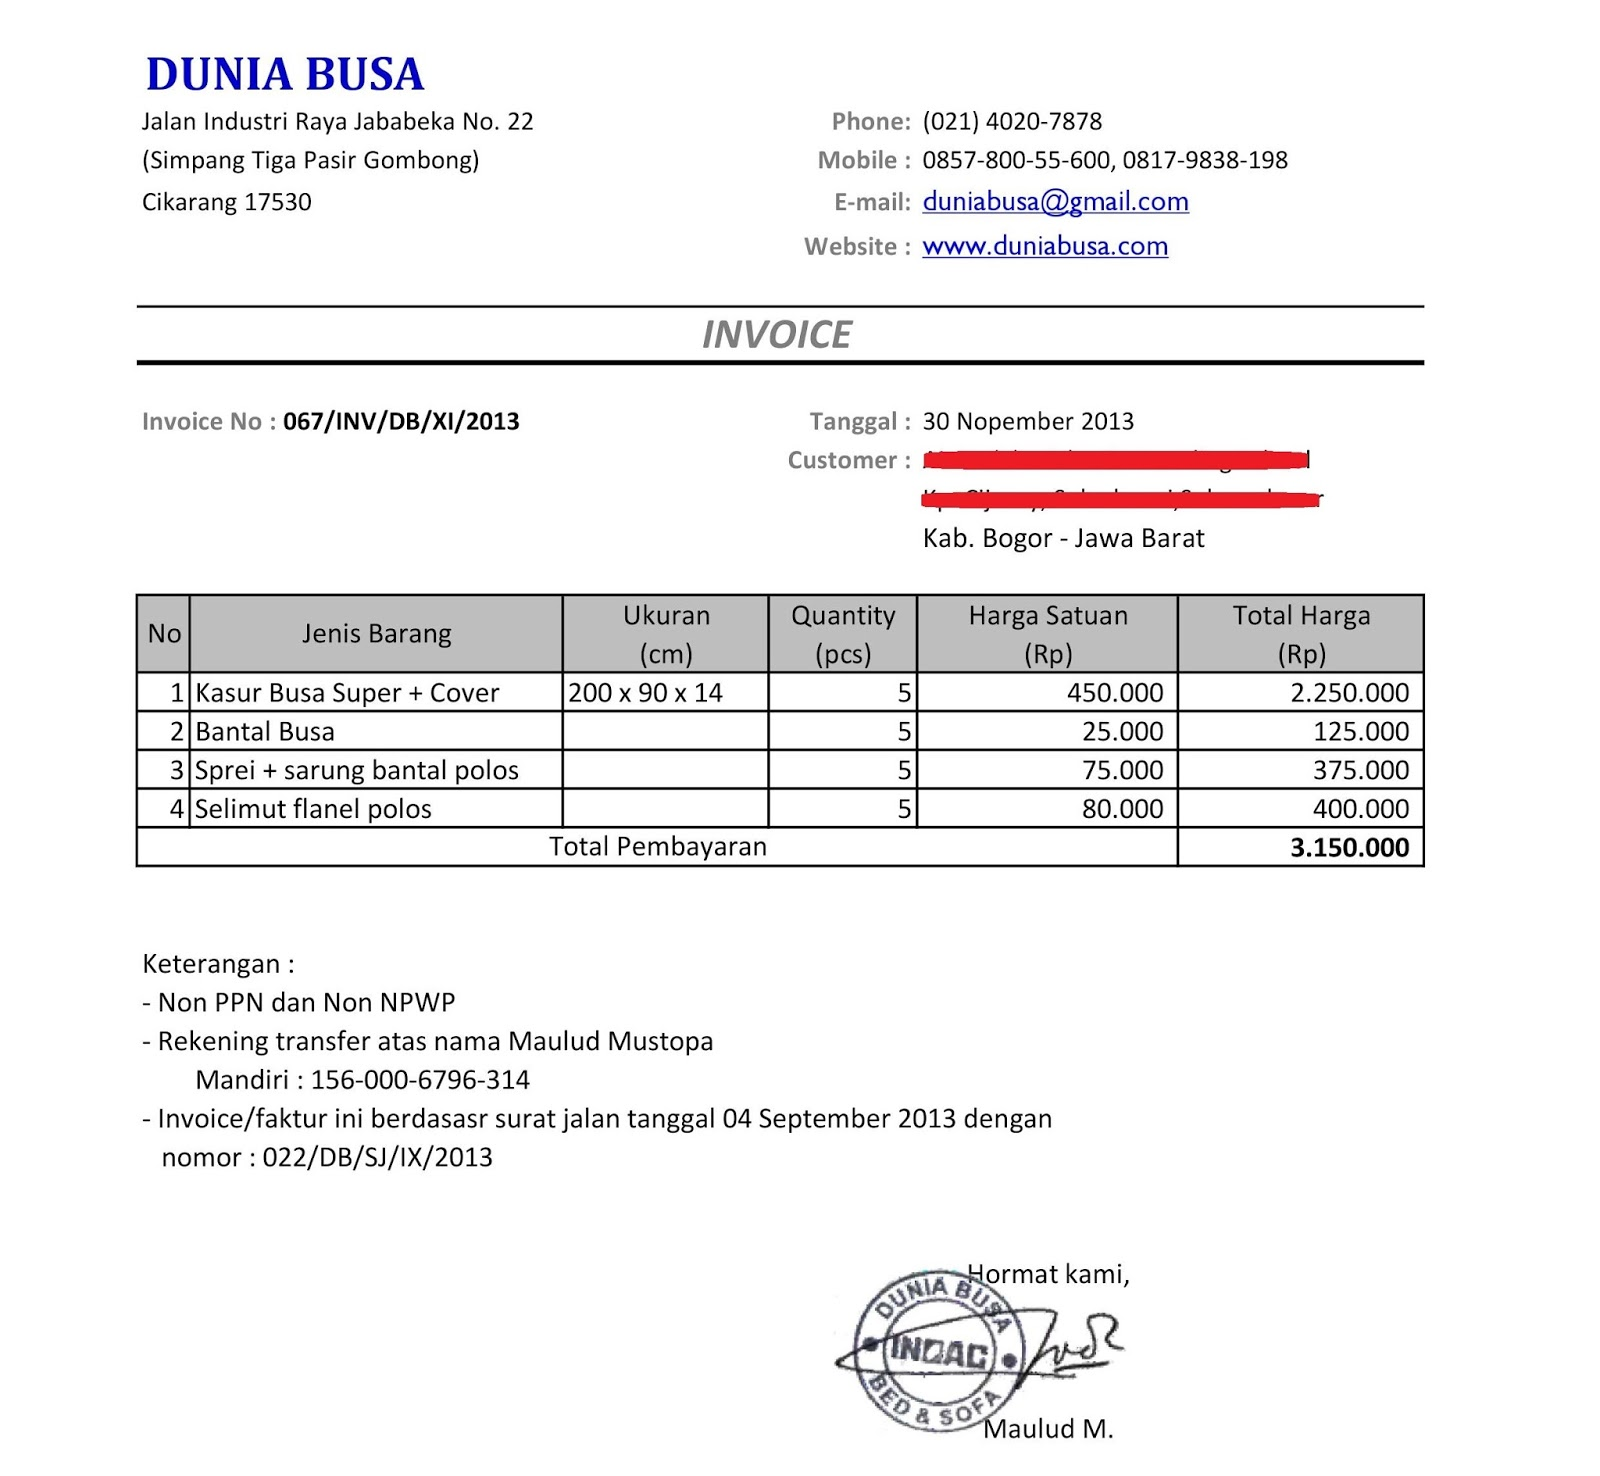 Centralasianshepherdus  Fascinating Free Invoice Online  Create Invoice Online  Invoice Template  With Remarkable Contoh Format Invoice Atau Surat Tagihan  Brankas Arsip  Free Invoice Online With Divine Dealer Invoice Price Toyota Also Monthly Invoice In Addition Invoice Example Pdf And Free Invoice Software Mac As Well As Difference Between Msrp And Invoice Price Additionally Free Invoicing Templates From Sklepco With Centralasianshepherdus  Remarkable Free Invoice Online  Create Invoice Online  Invoice Template  With Divine Contoh Format Invoice Atau Surat Tagihan  Brankas Arsip  Free Invoice Online And Fascinating Dealer Invoice Price Toyota Also Monthly Invoice In Addition Invoice Example Pdf From Sklepco